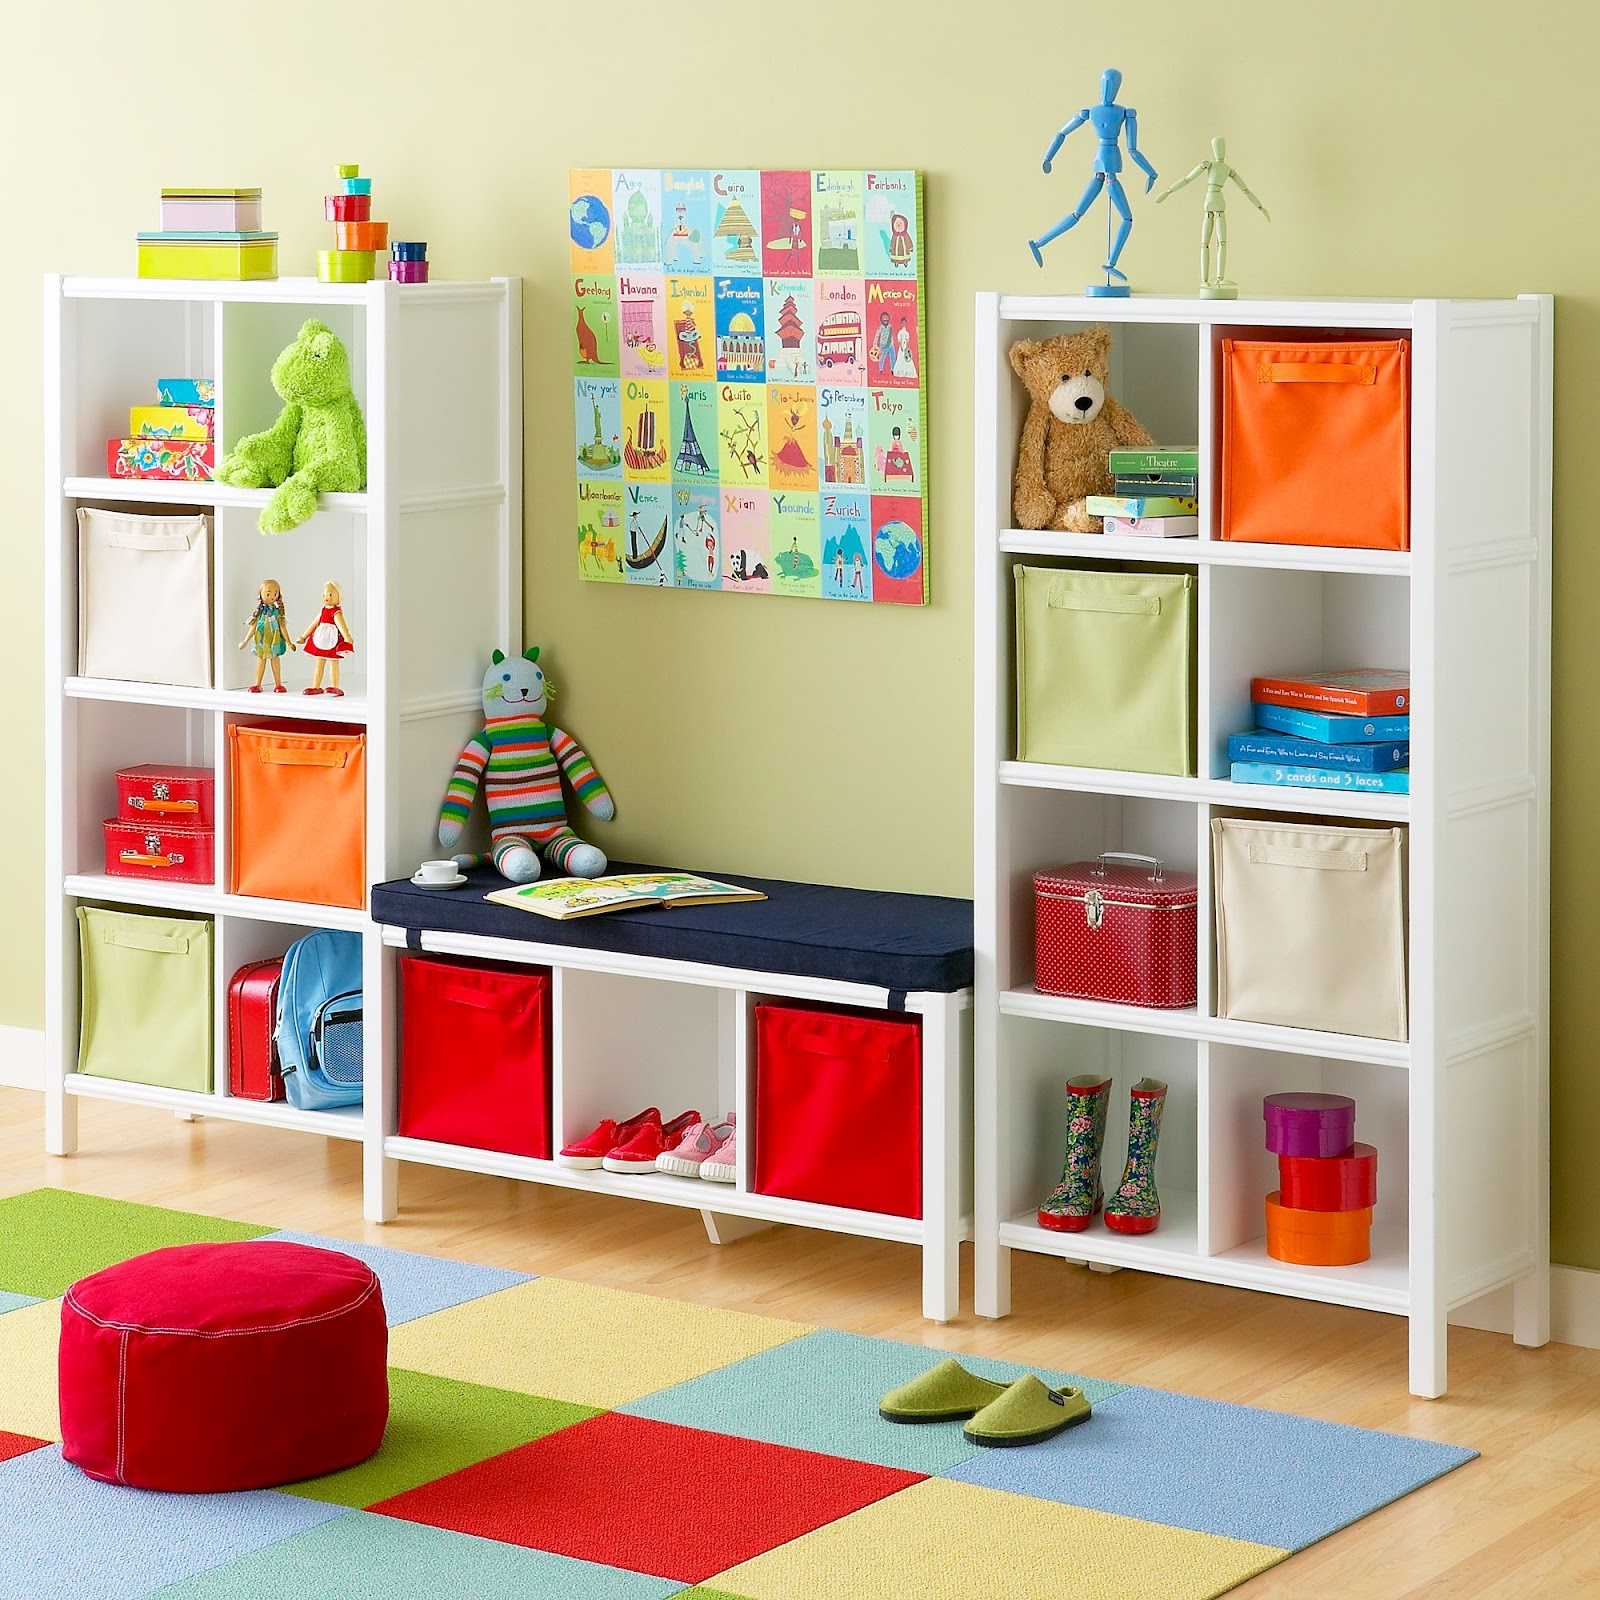 Design Playroom Storage cube storage in primary colors childs playroom interior design like architecture follow us